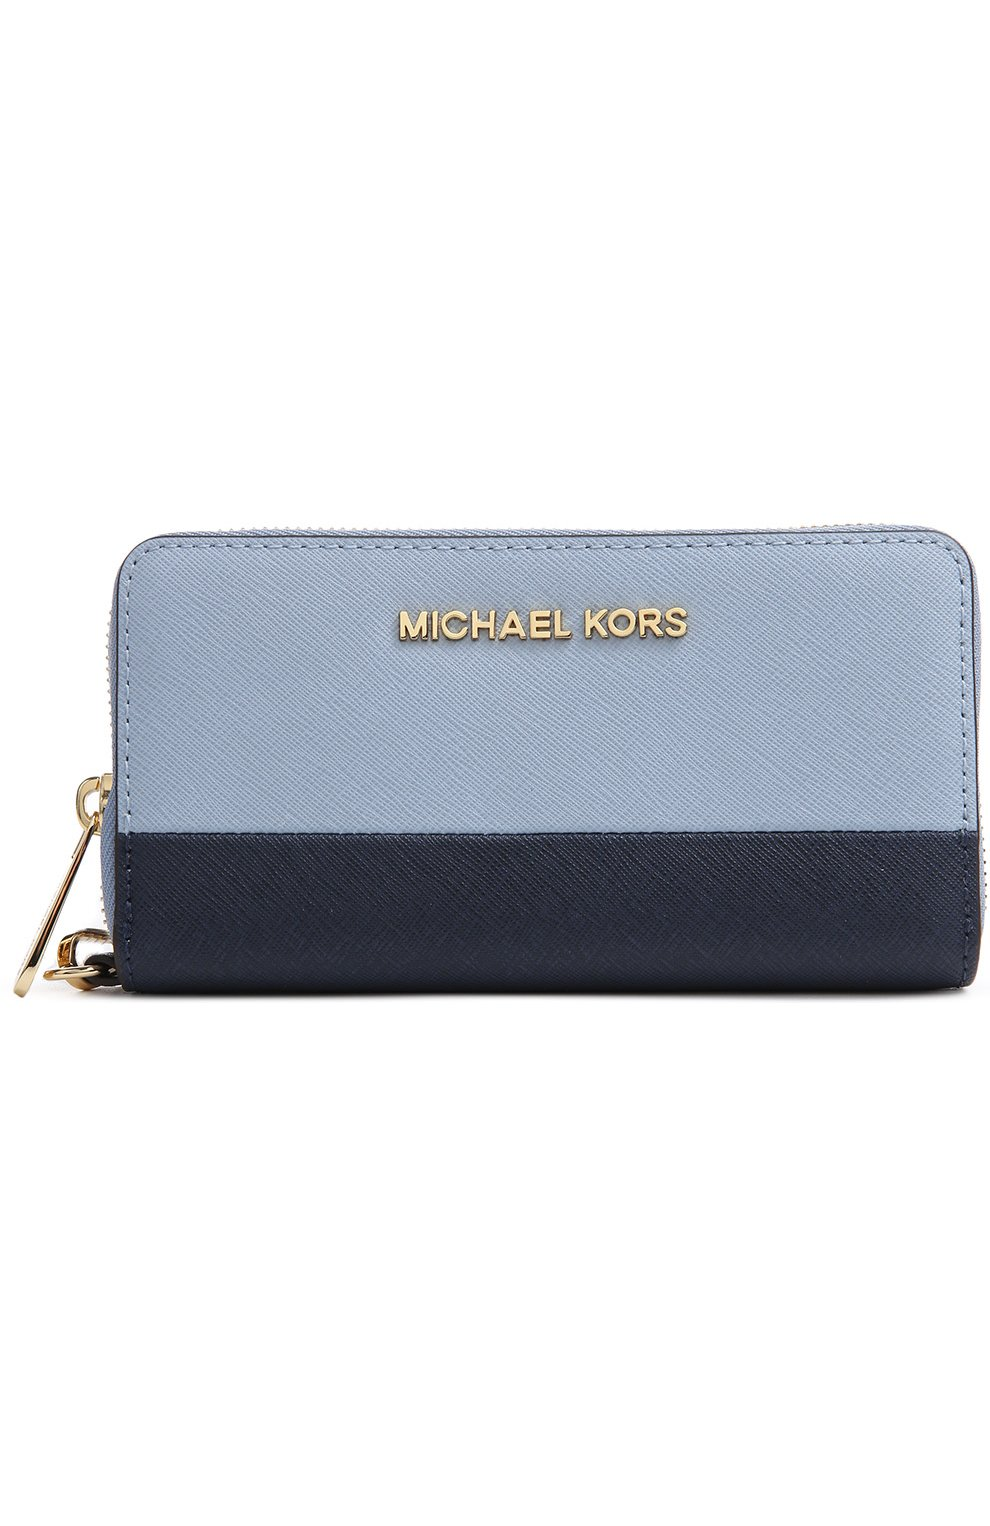 Портмоне Jet Set Travel Michael Michael Kors синего цвета | Фото №1